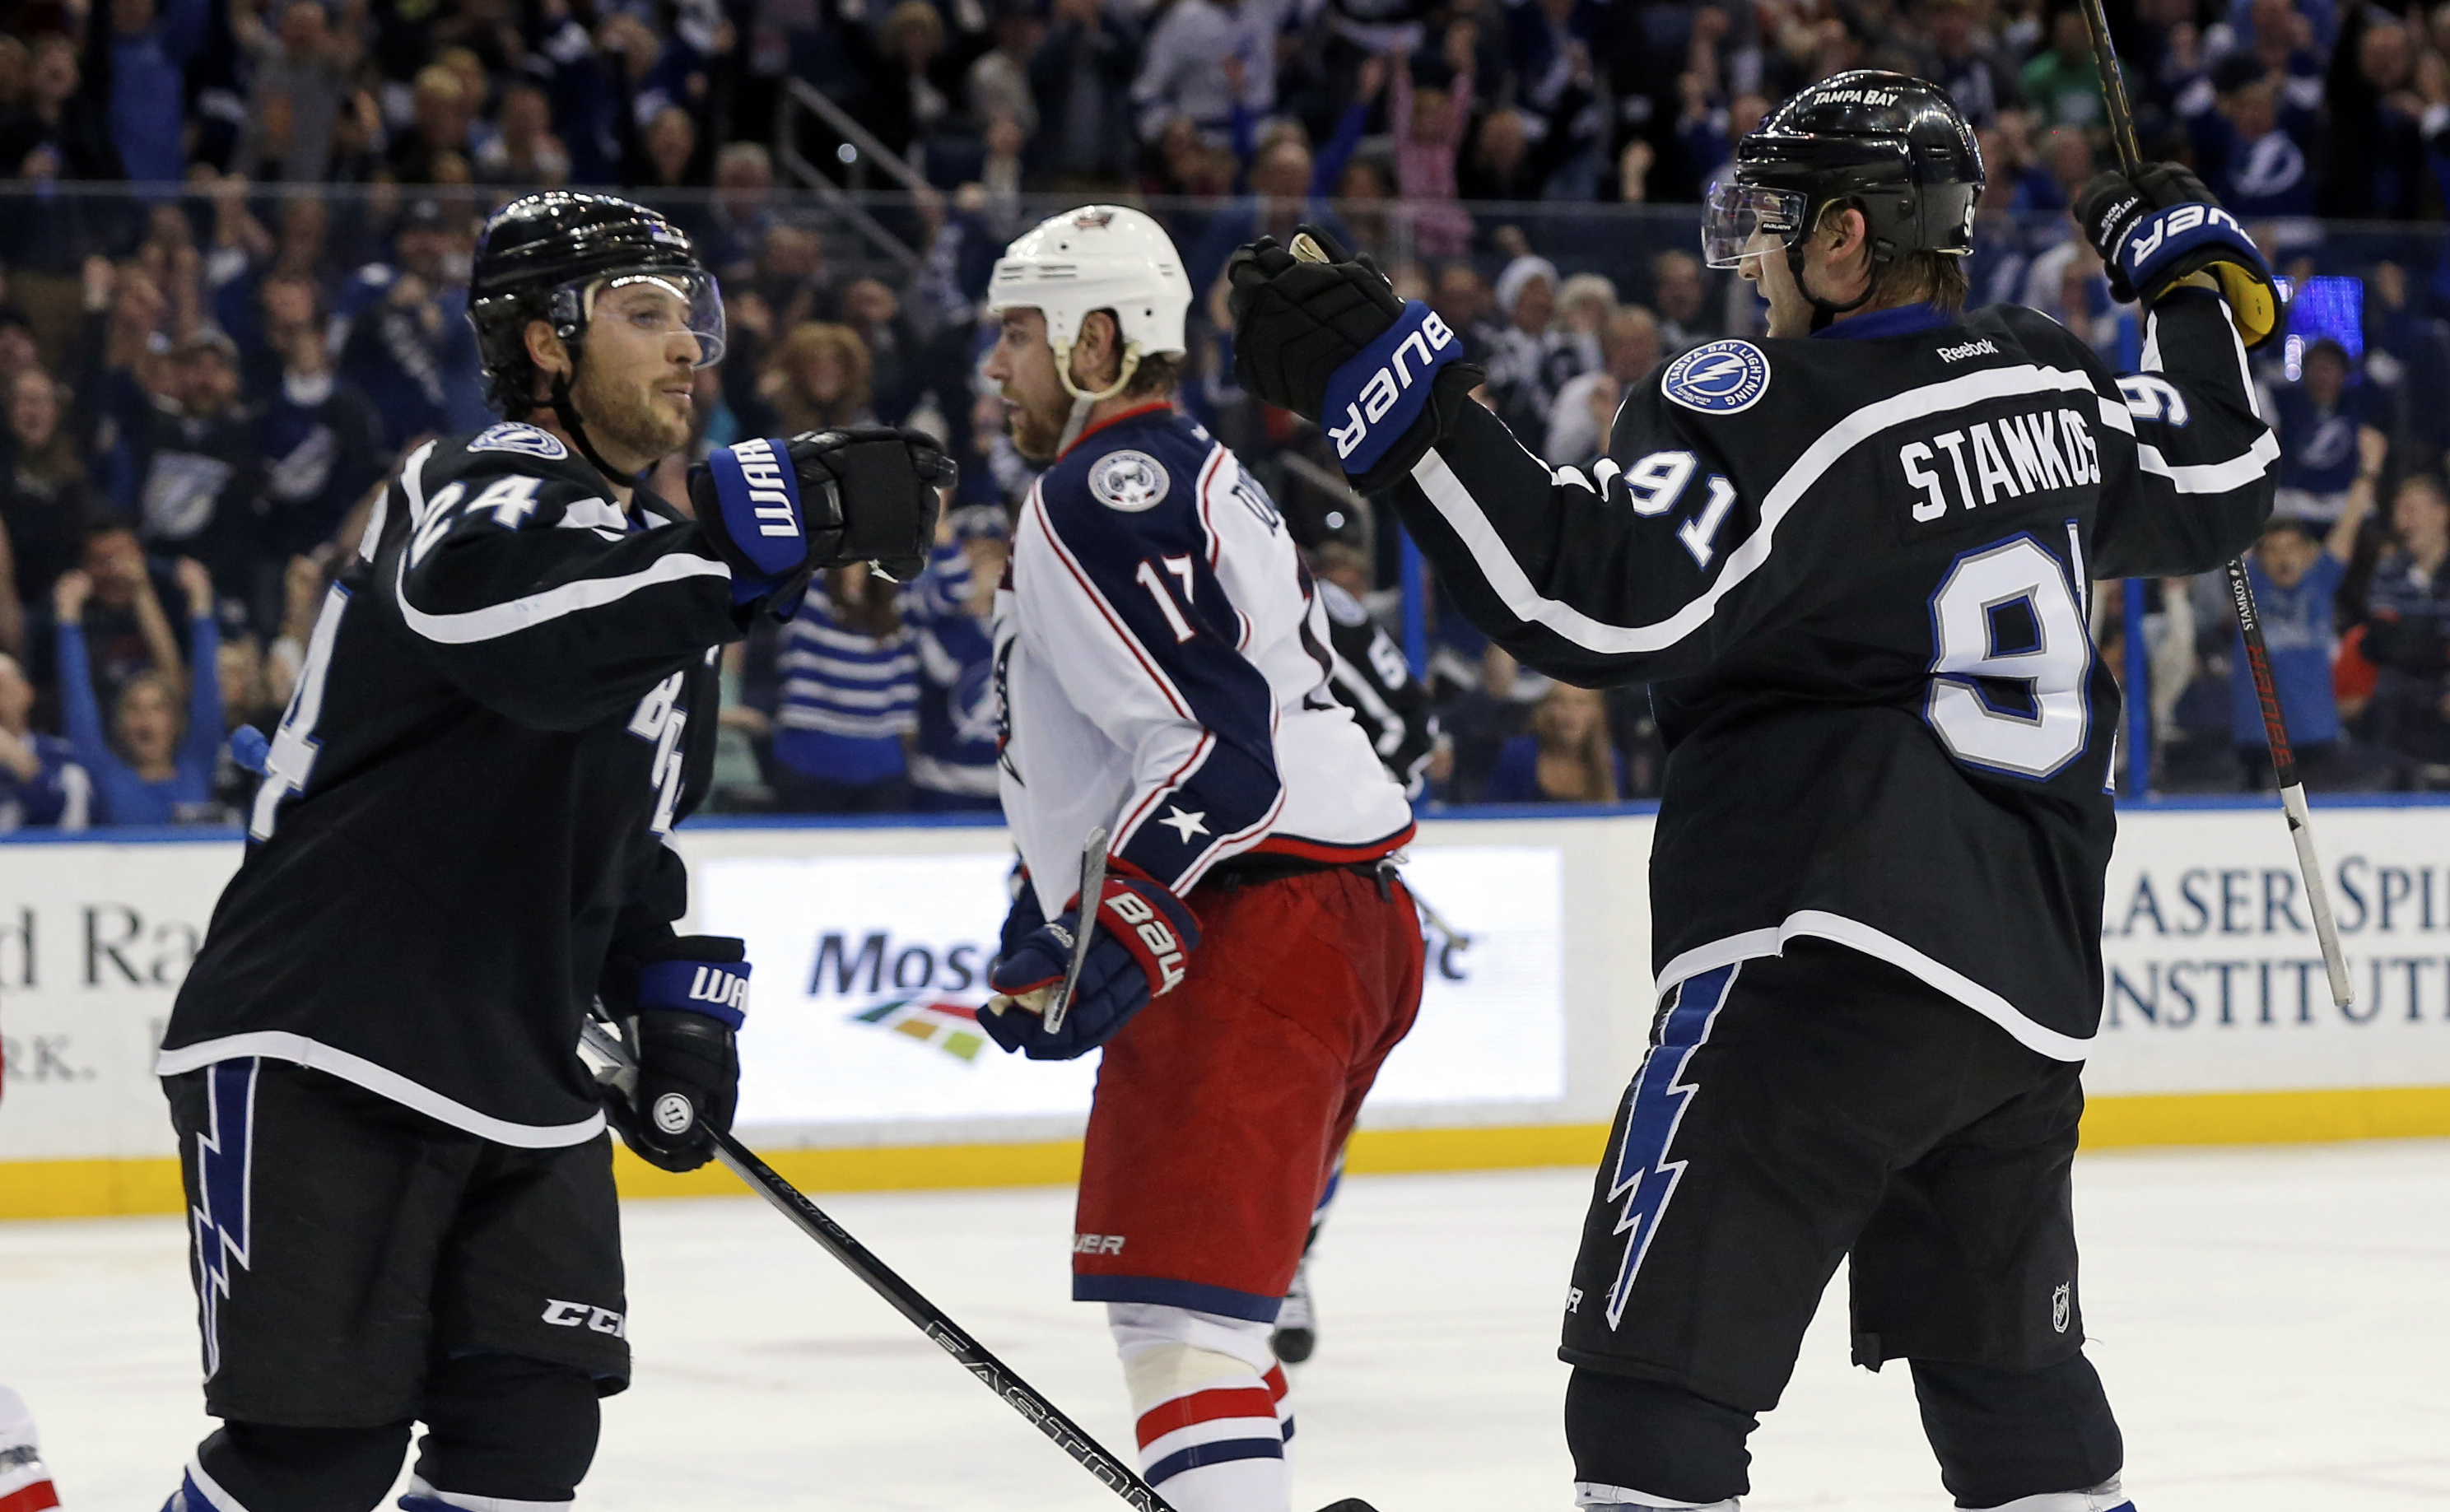 Tampa Bay Lightning's Steven Stamkos, right, celebrates his second goal of the game with teammate Ryan Callahan as Columbus Blue Jackets' Brandon Dubinsky reacts during the second period of an NHL hockey game Saturday, Dec. 26, 2015, in Tampa, Fla. (AP Ph